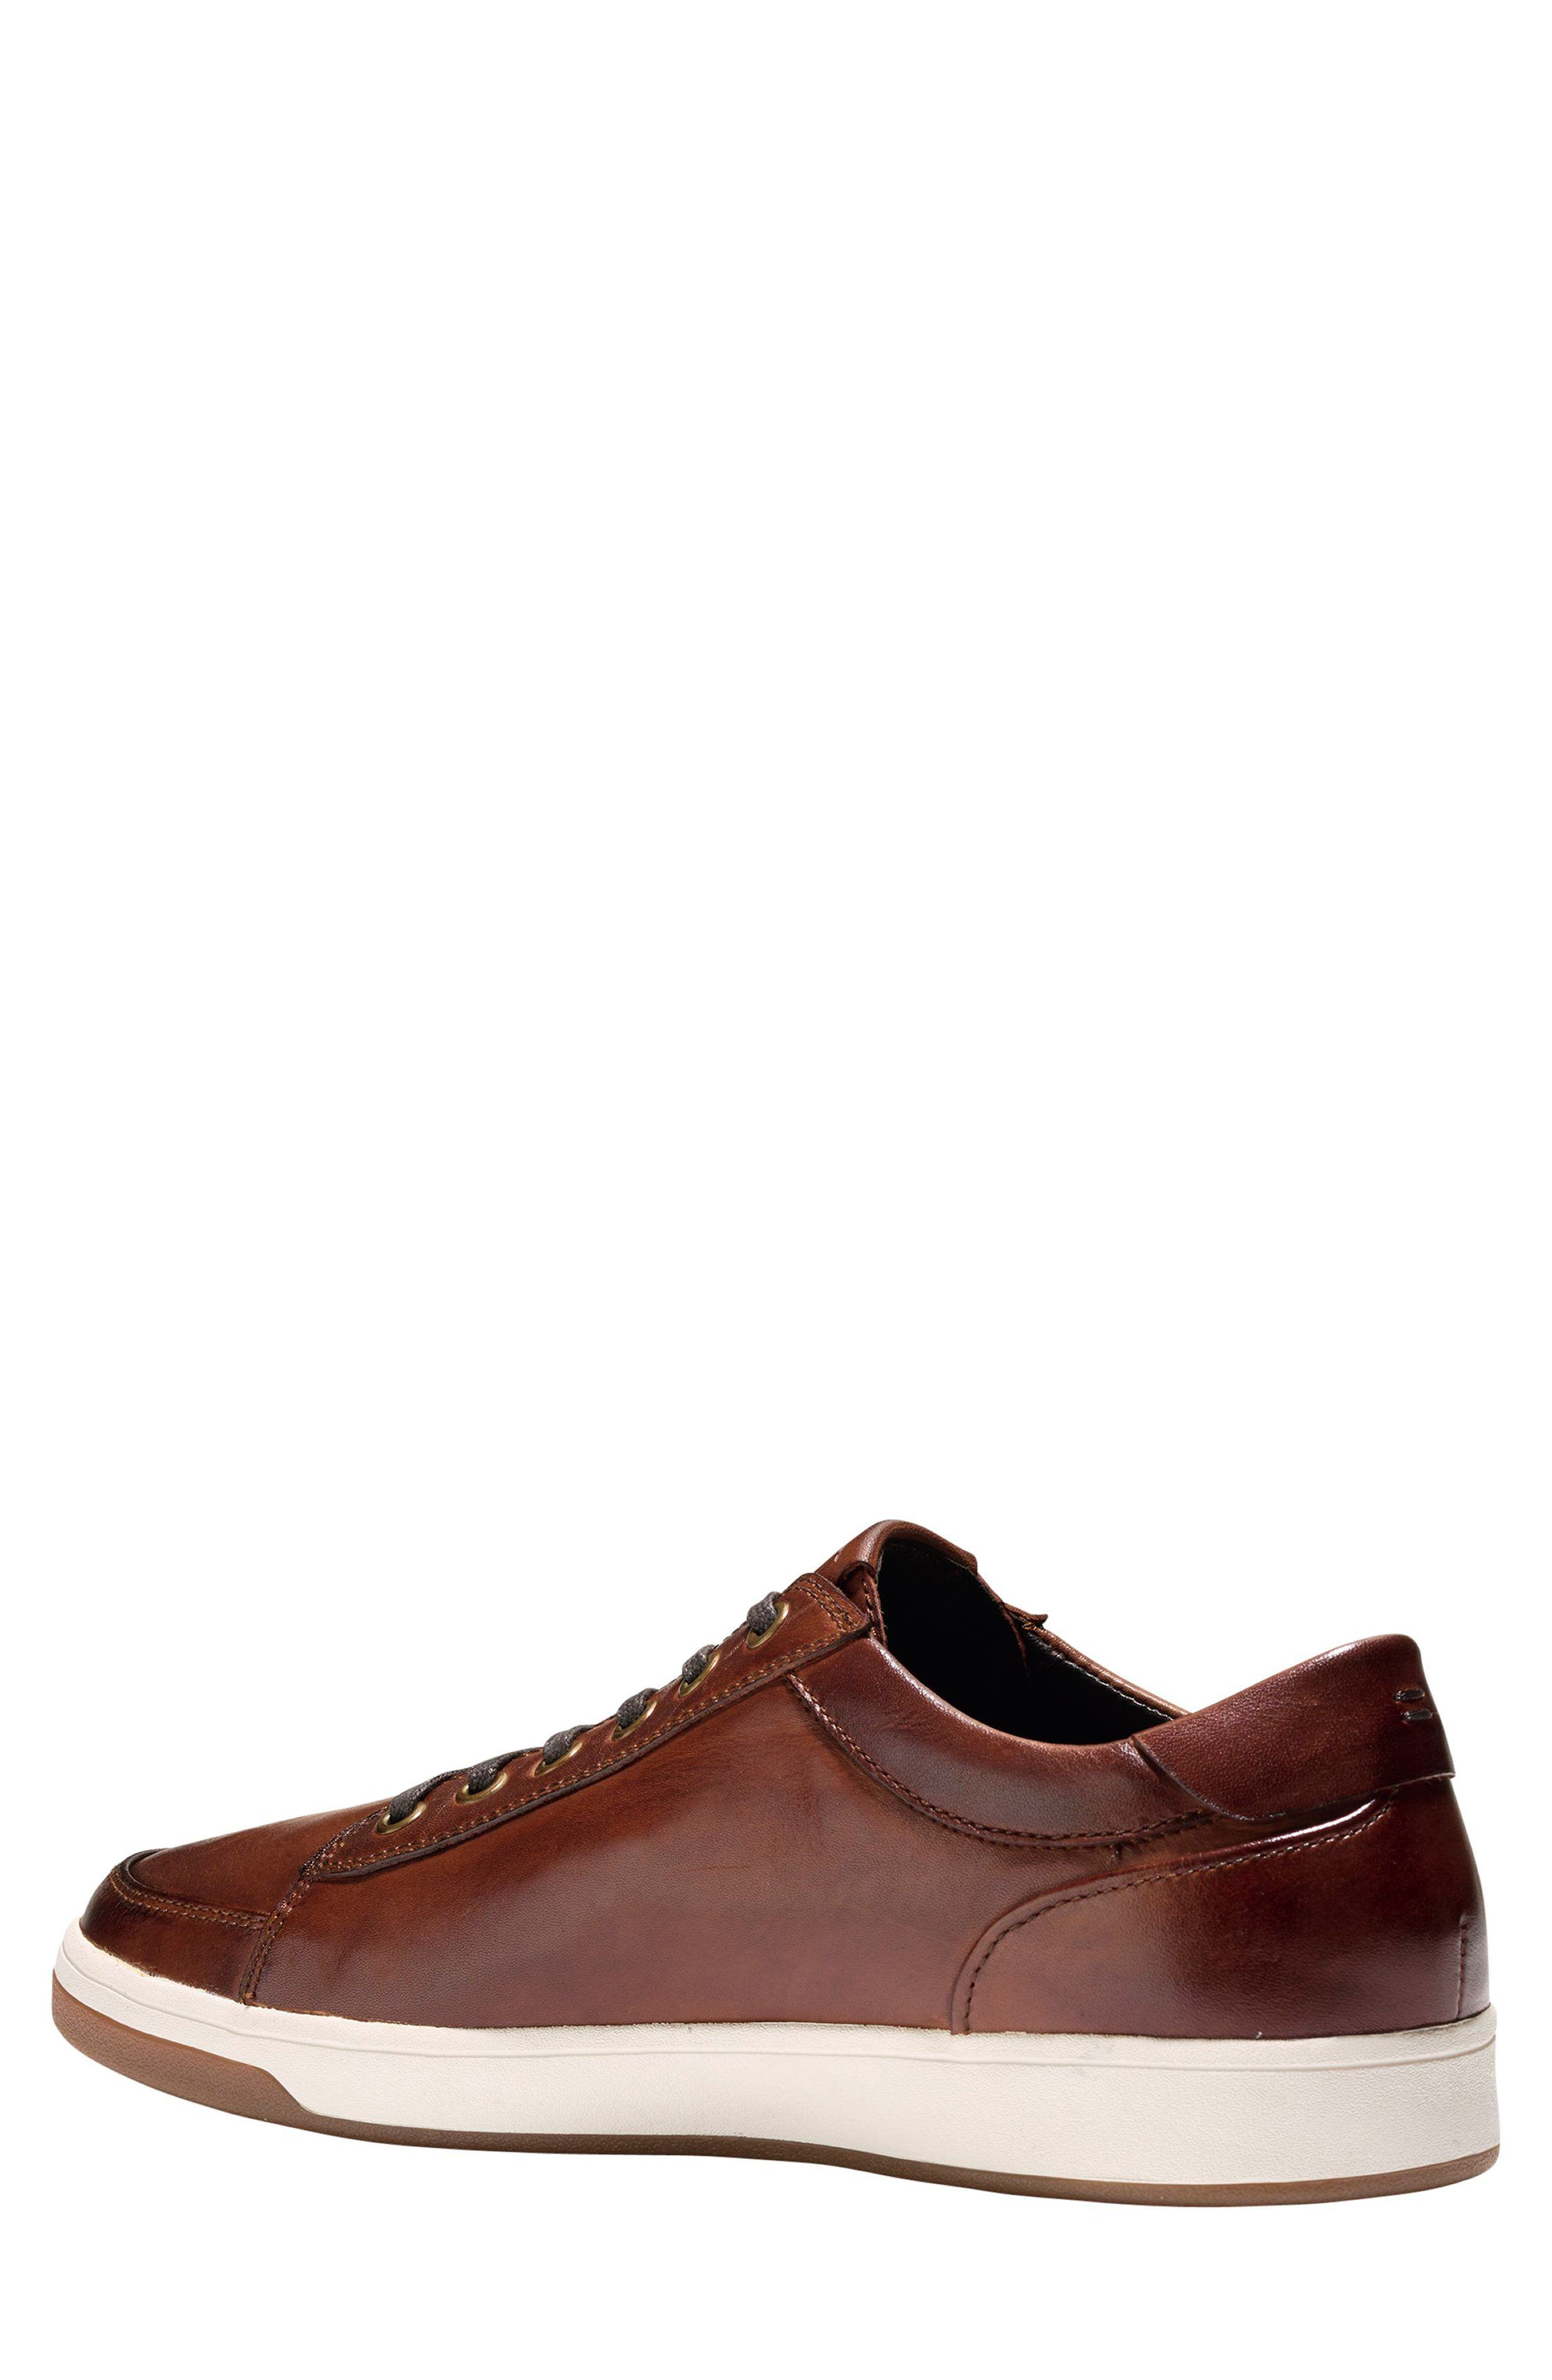 COLE HAAN, GrandPro Spectator Sneaker, Alternate thumbnail 2, color, WOODBURY LEATHER